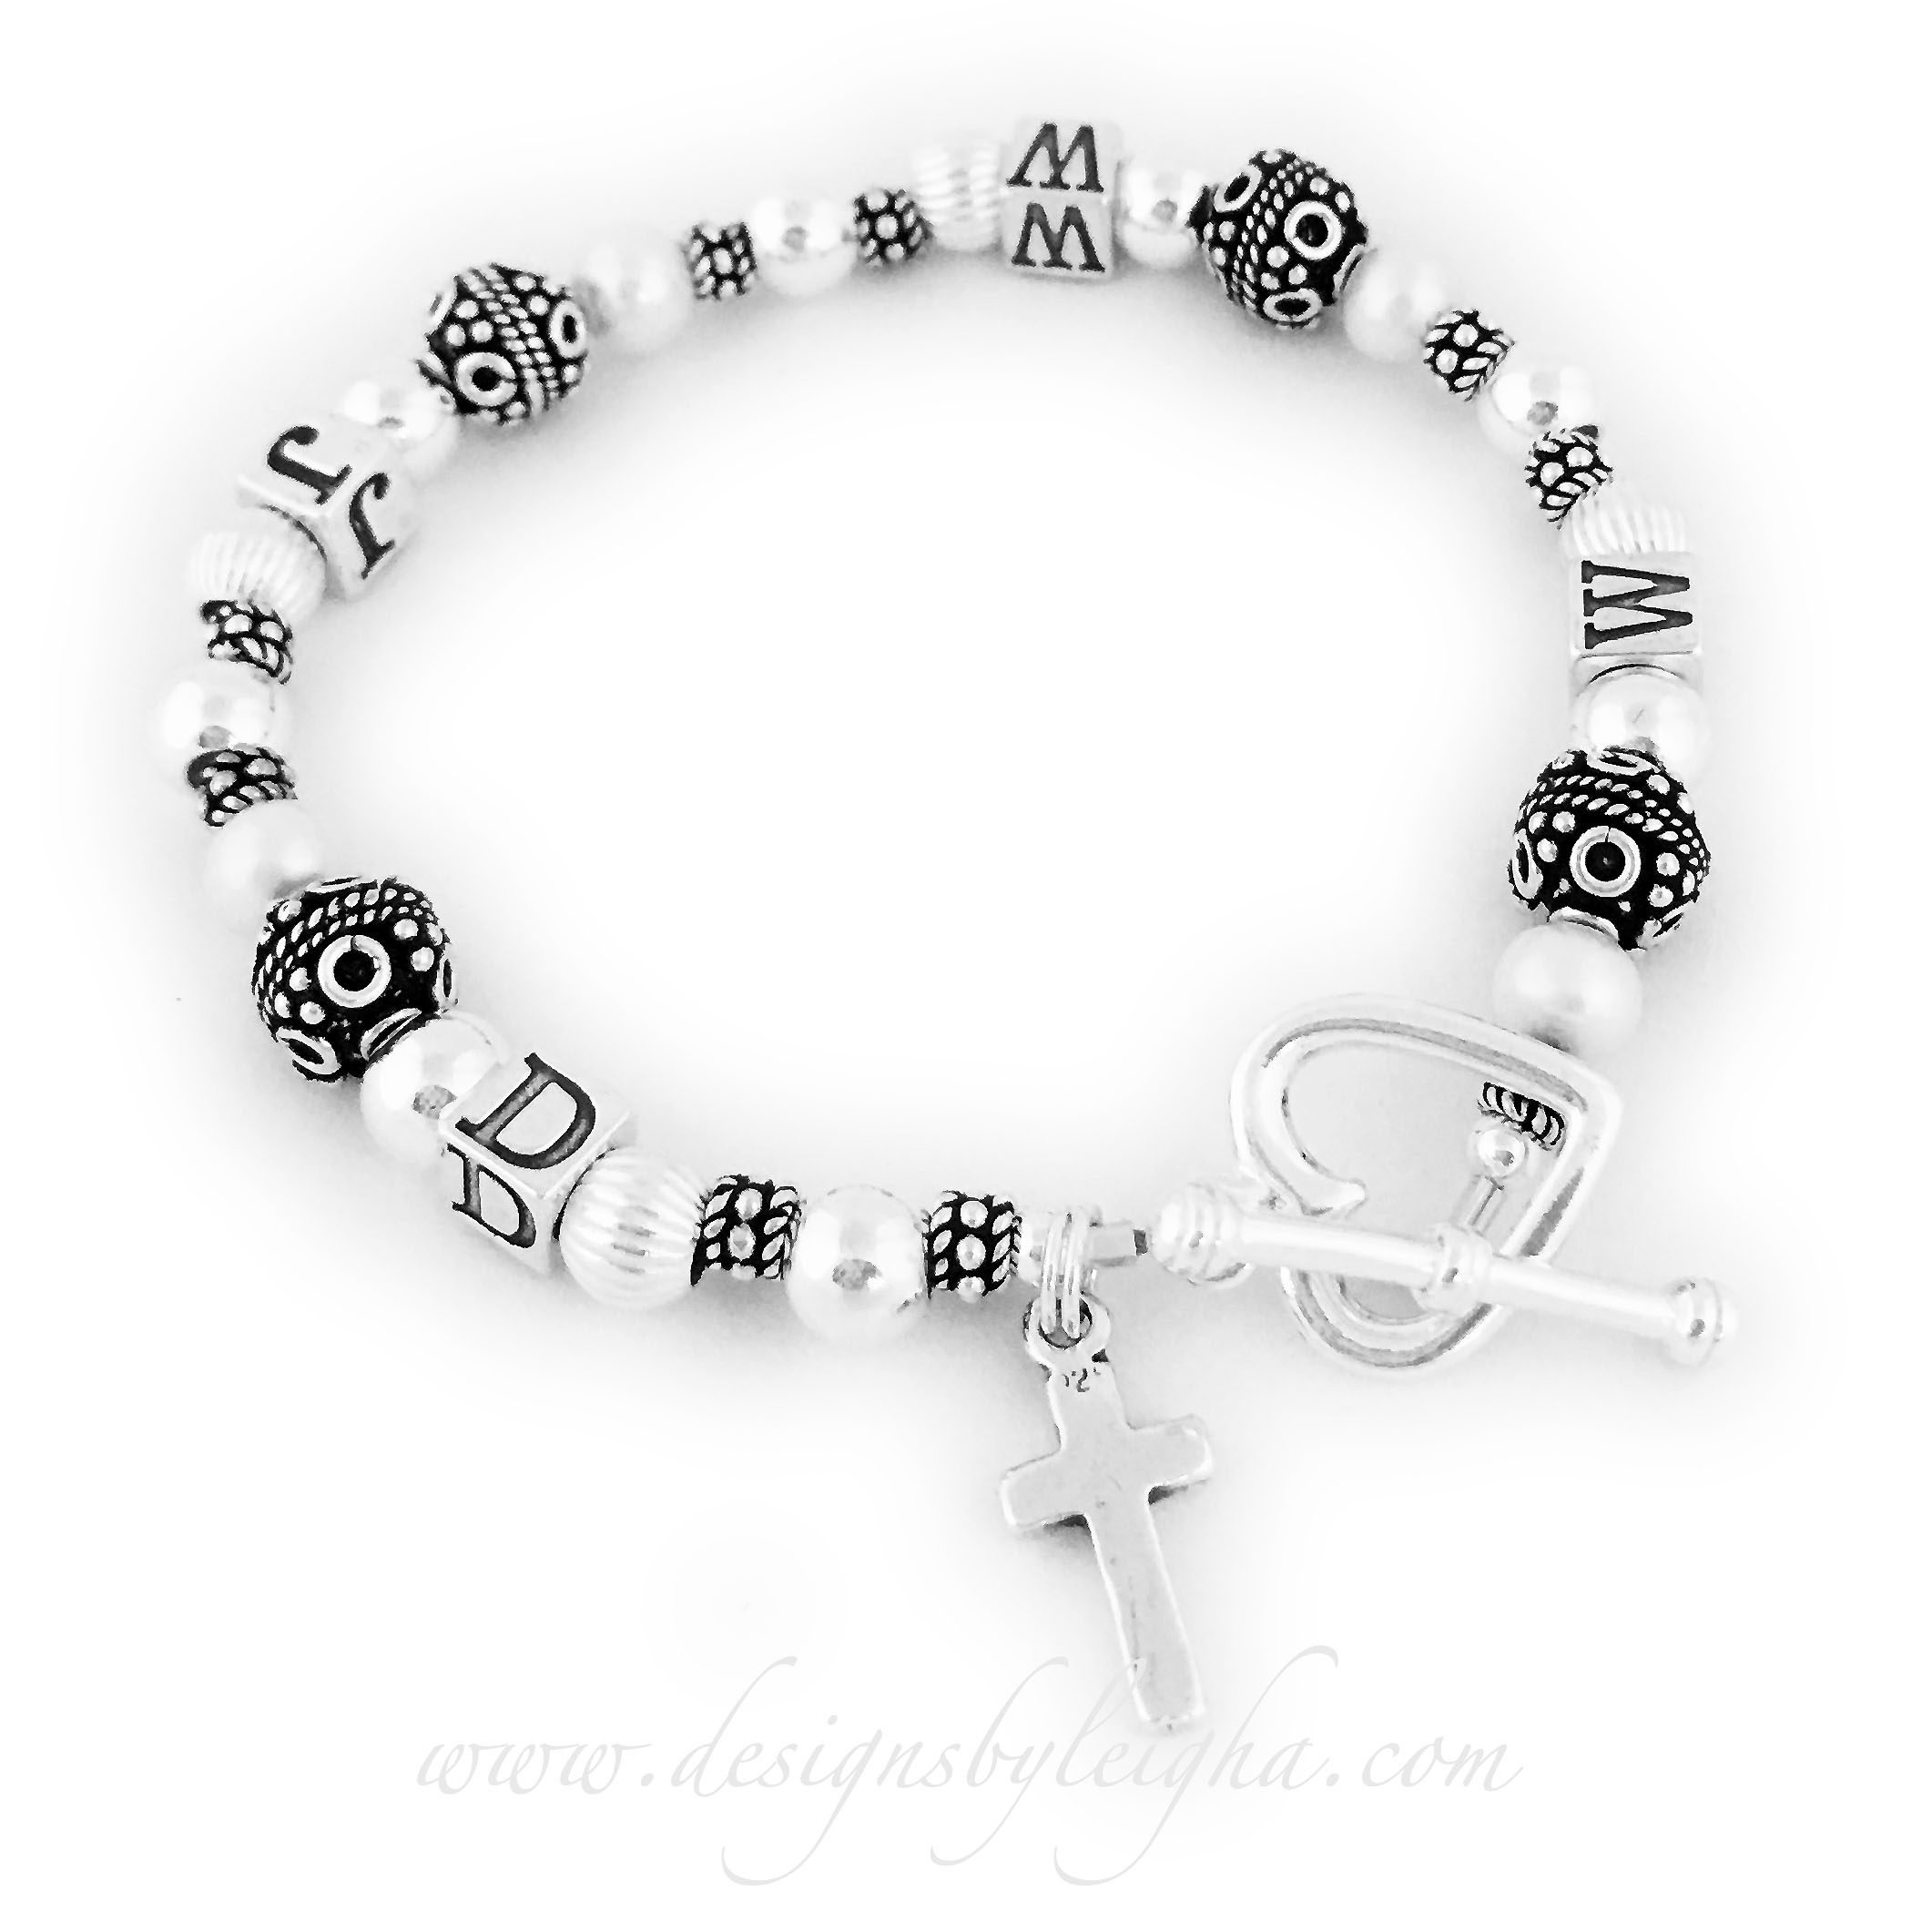 What Would Jesus Do Bracelet with two upgrades/add-ons: Heart Toggle Clasp and a Simple Cross Charm.